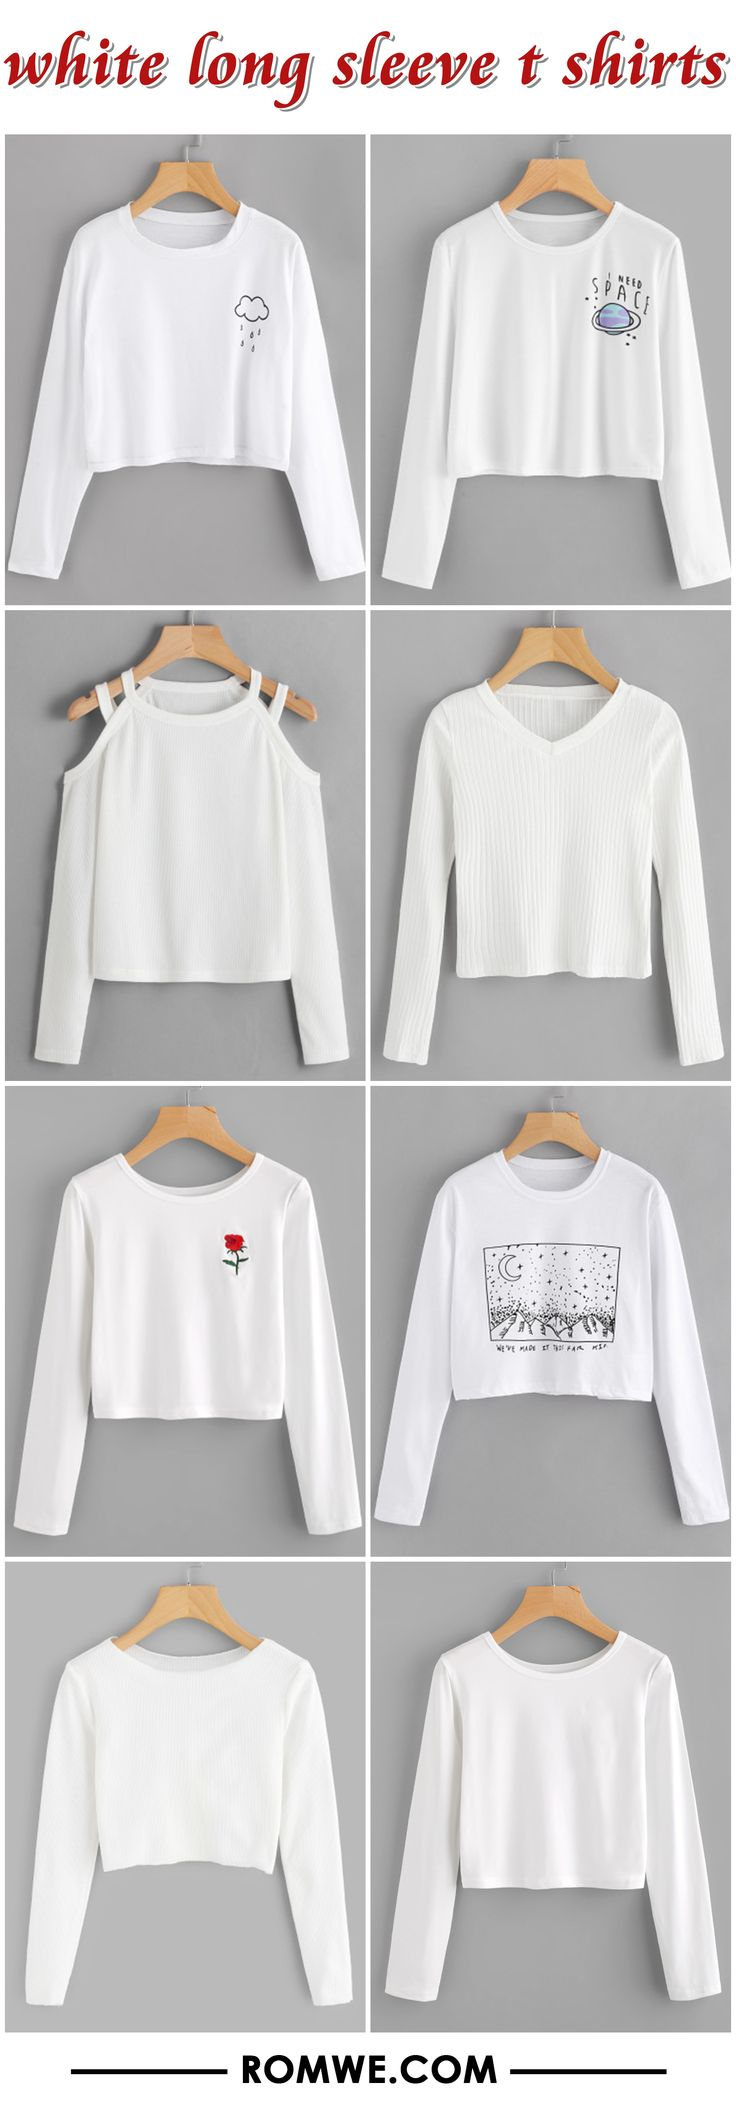 white long sleeve t shirts from romwe.com